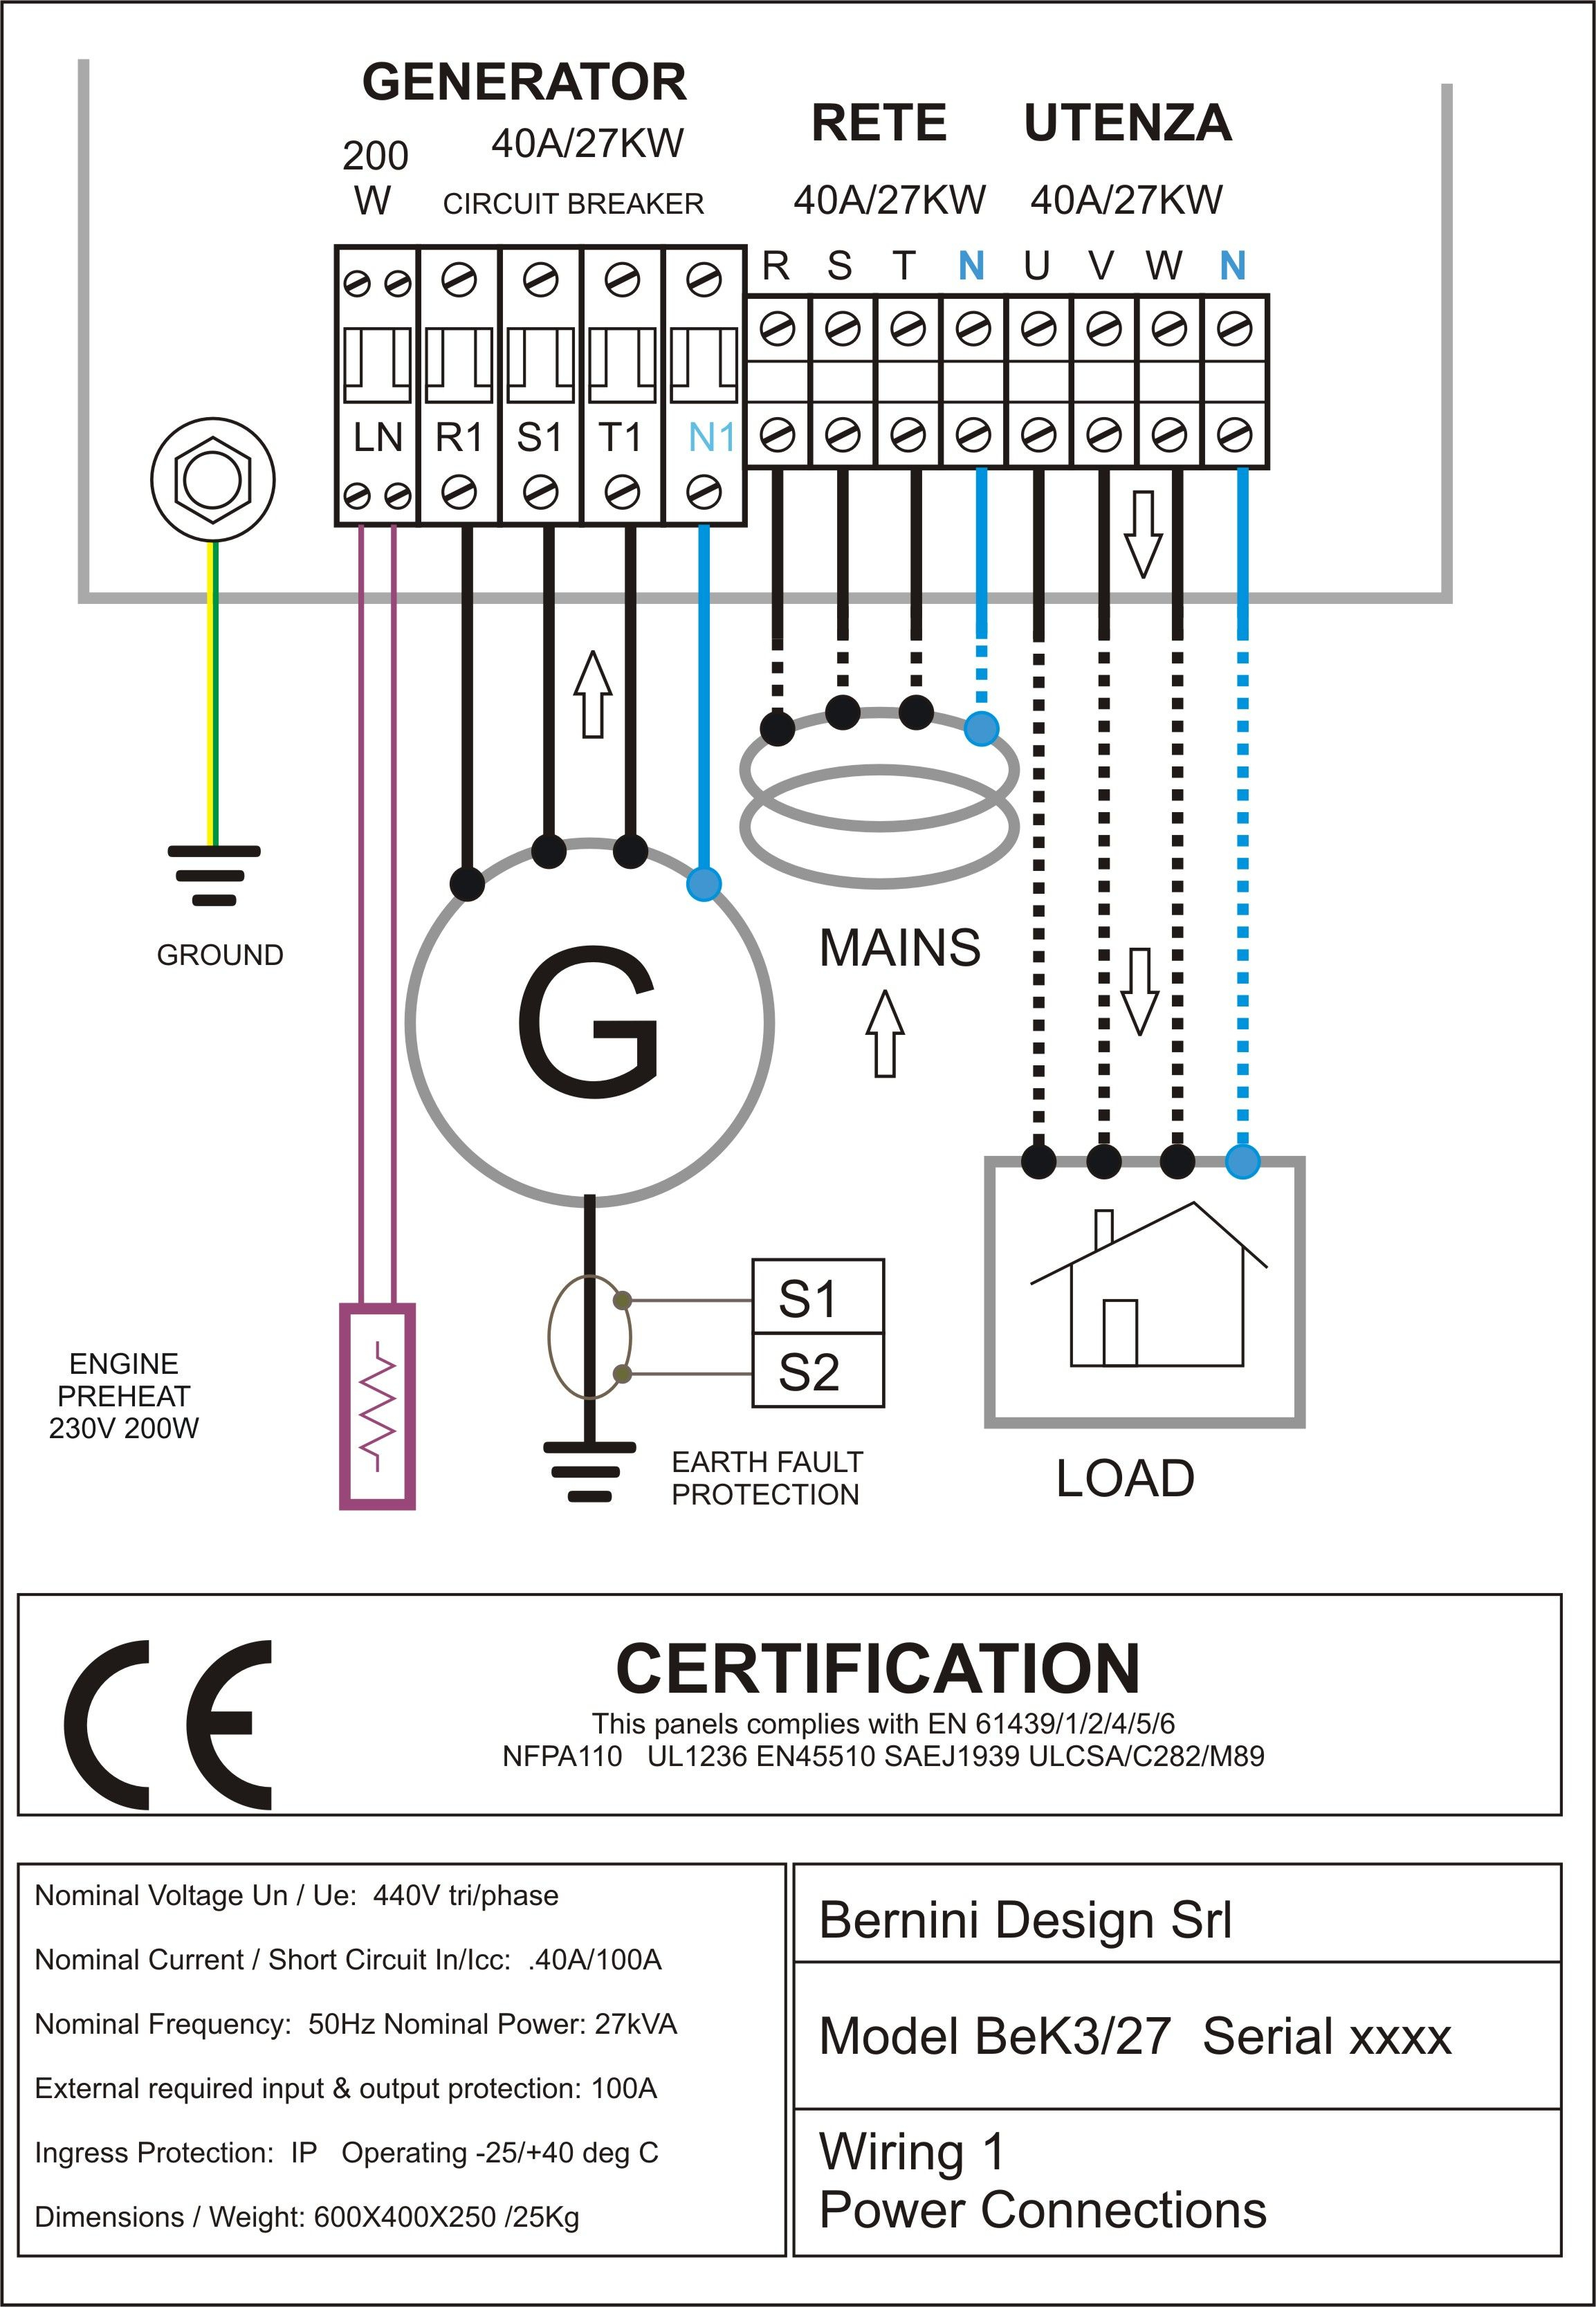 Marine Electrical Control Panel Wiring Diagram | Manual E-Books - Ewc R1 Relay Wiring Diagram For Nest